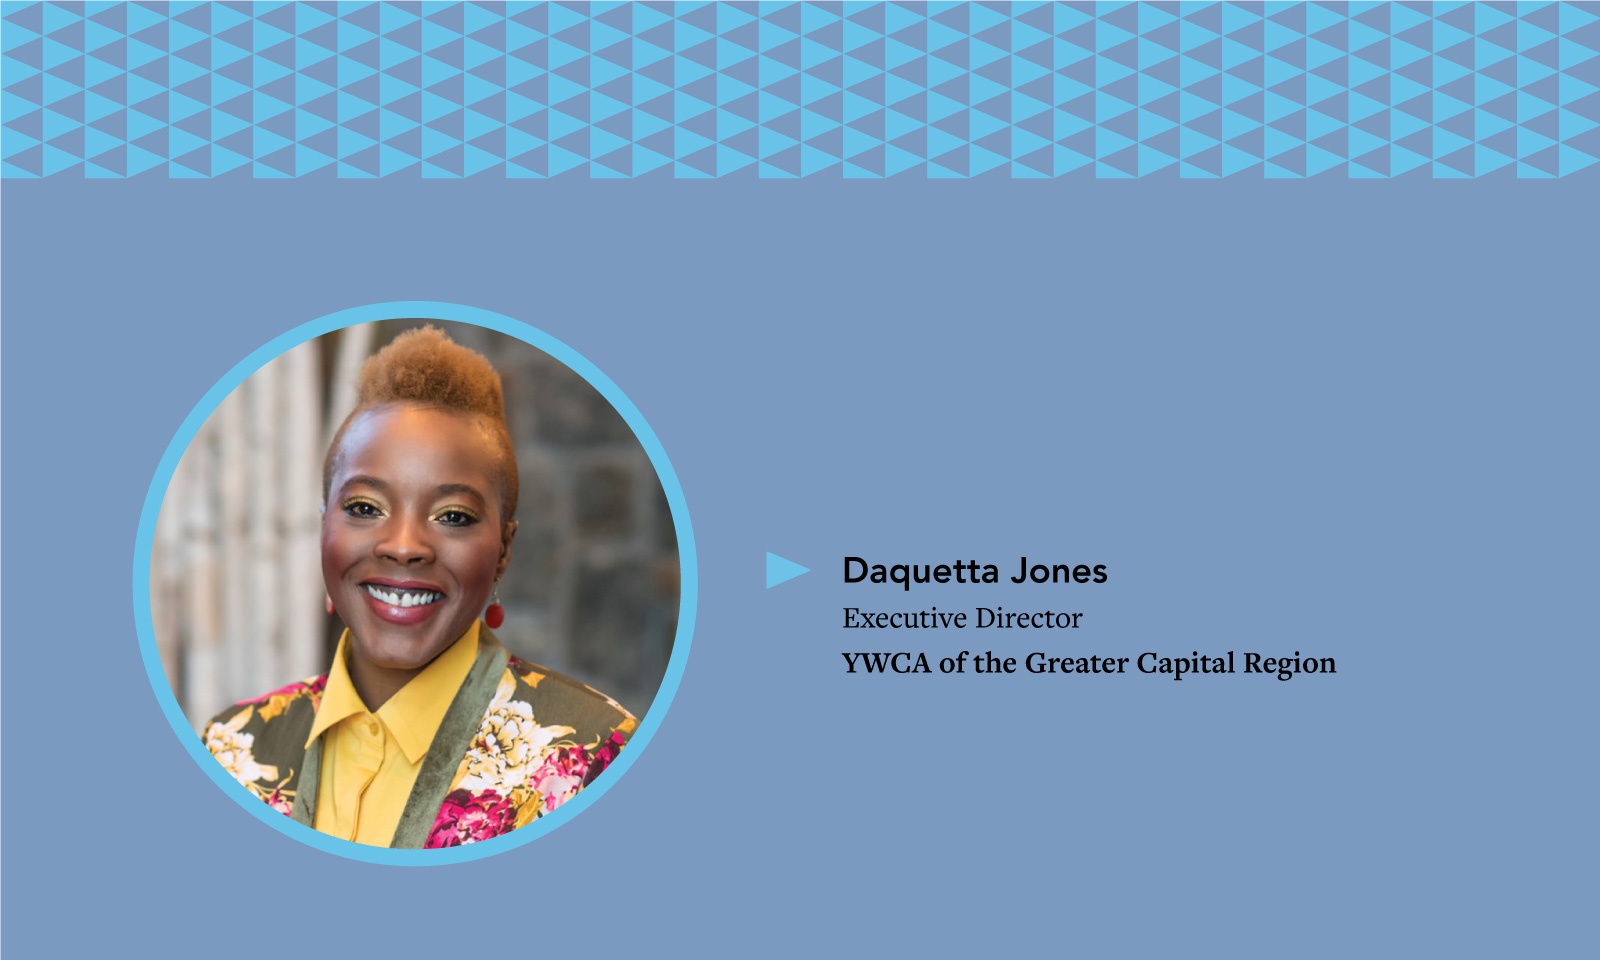 Alaant Influencers: Daquetta Jones, Executive Director of YWCA of the Greater Capital Region